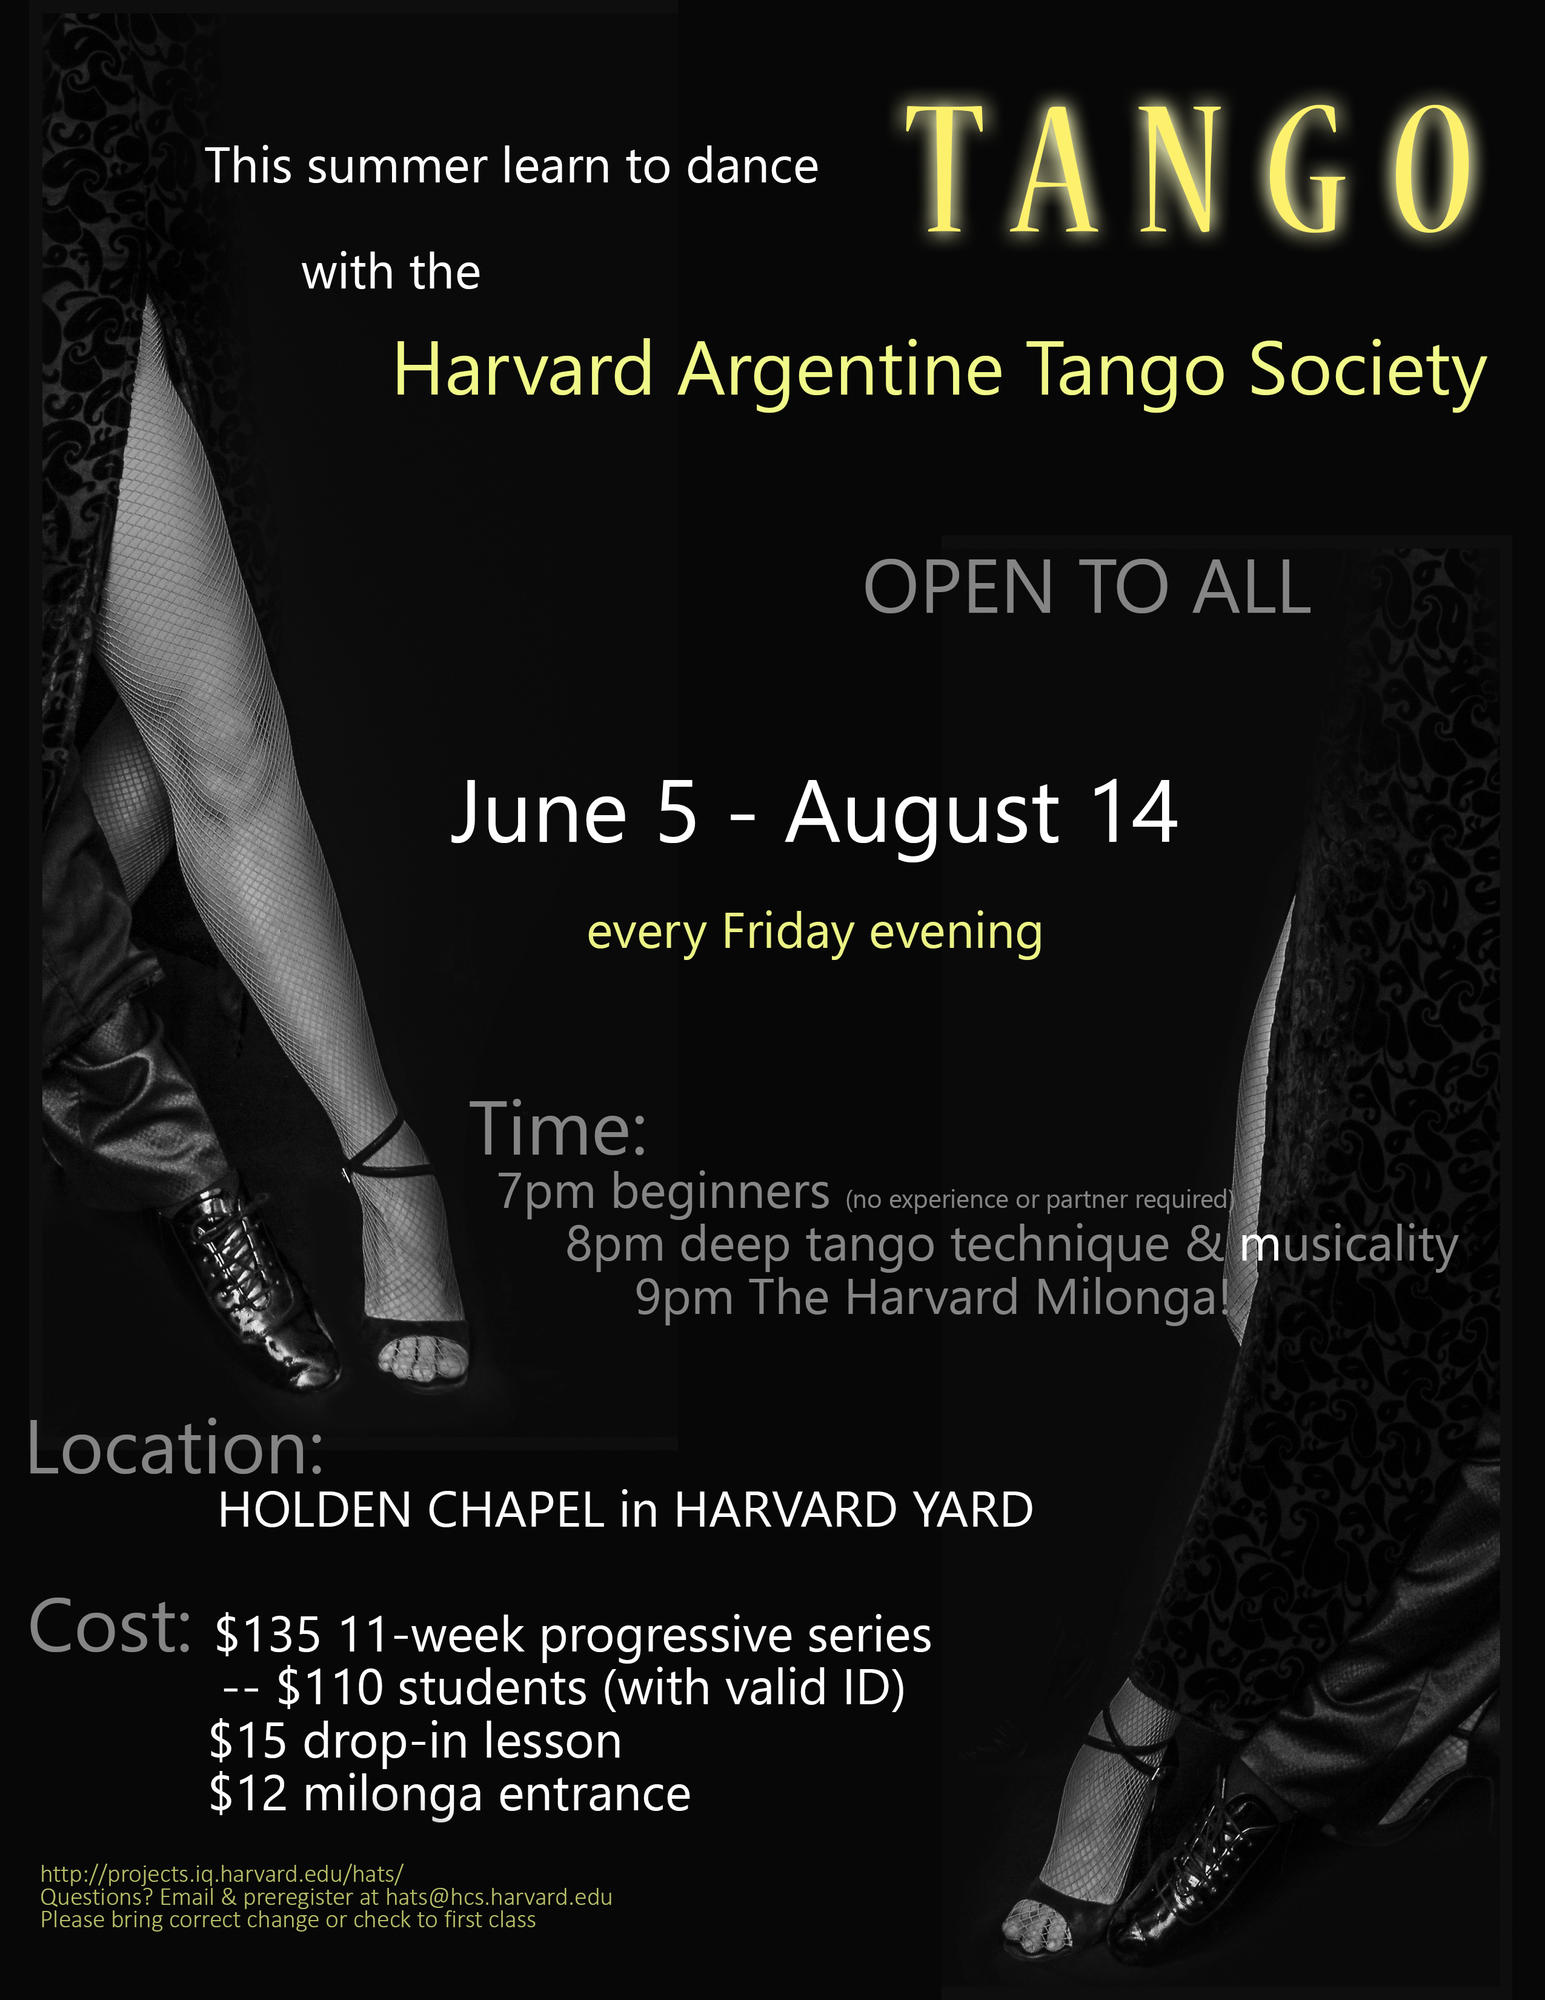 Harvard Argentine Tango Society presents its summer series of classes and milonga